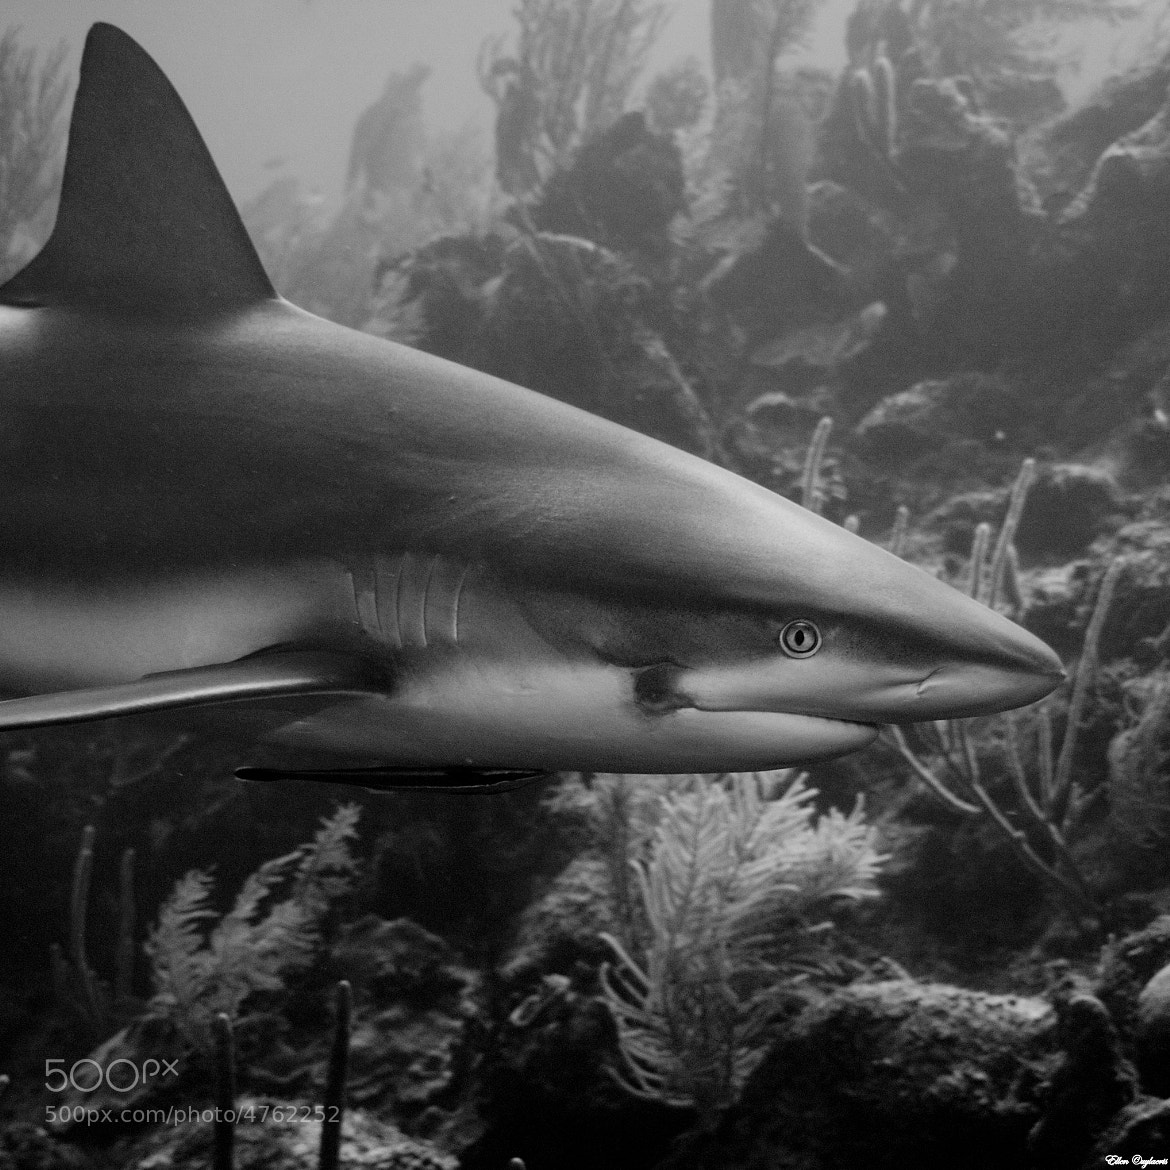 Photograph A reef shark's natural habitat by Ellen Cuylaerts on 500px